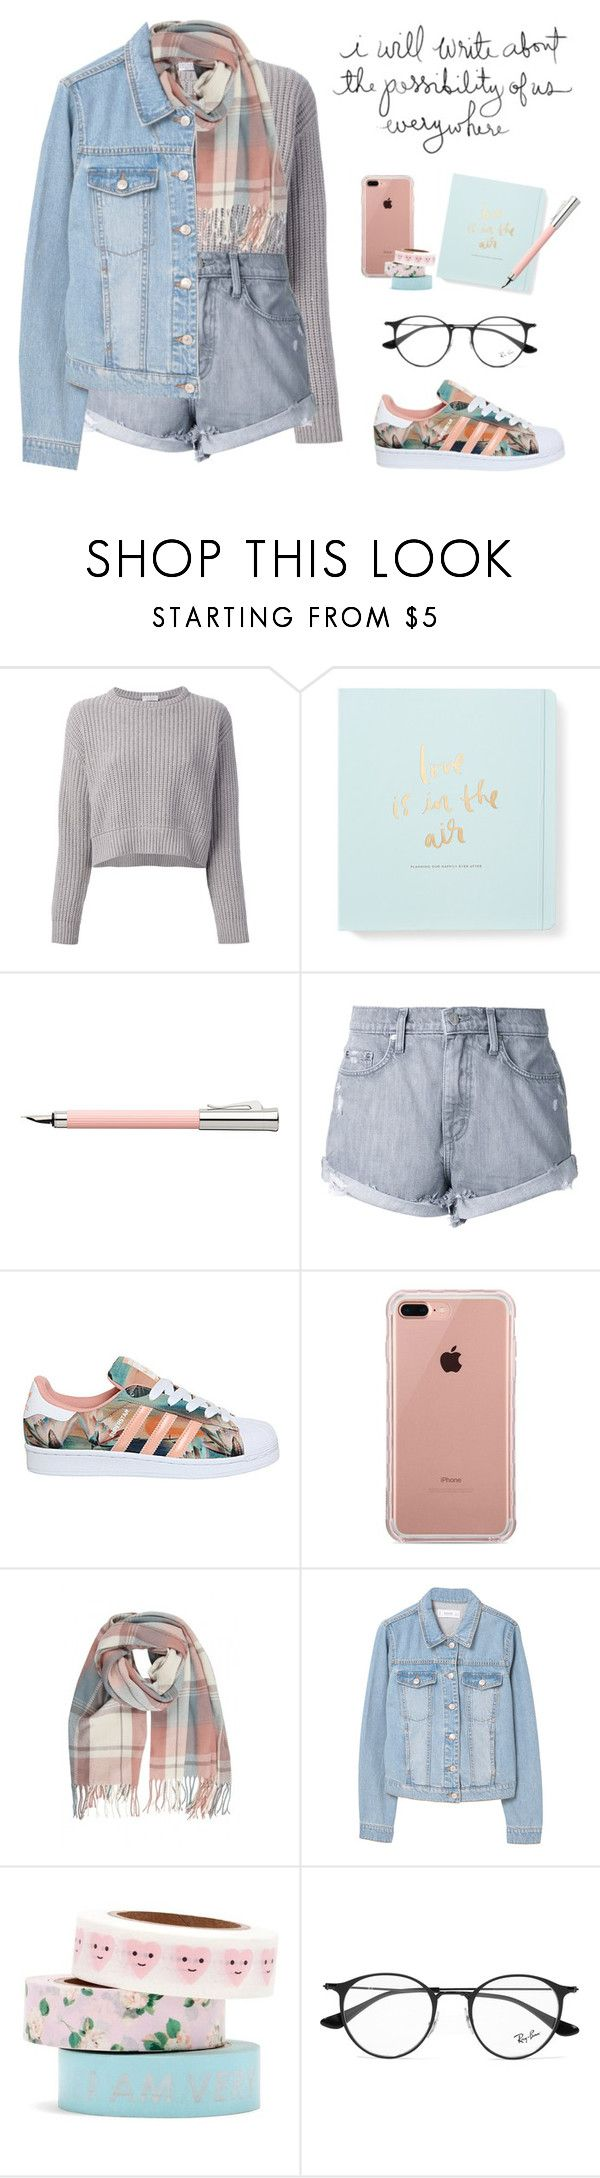 """""""Untitled #57"""" by kell-a ❤ liked on Polyvore featuring Brunello Cucinelli, Kate Spade, Faber-Castell, Nobody Denim, adidas, Belkin, MANGO, ban.do and Ray-Ban"""